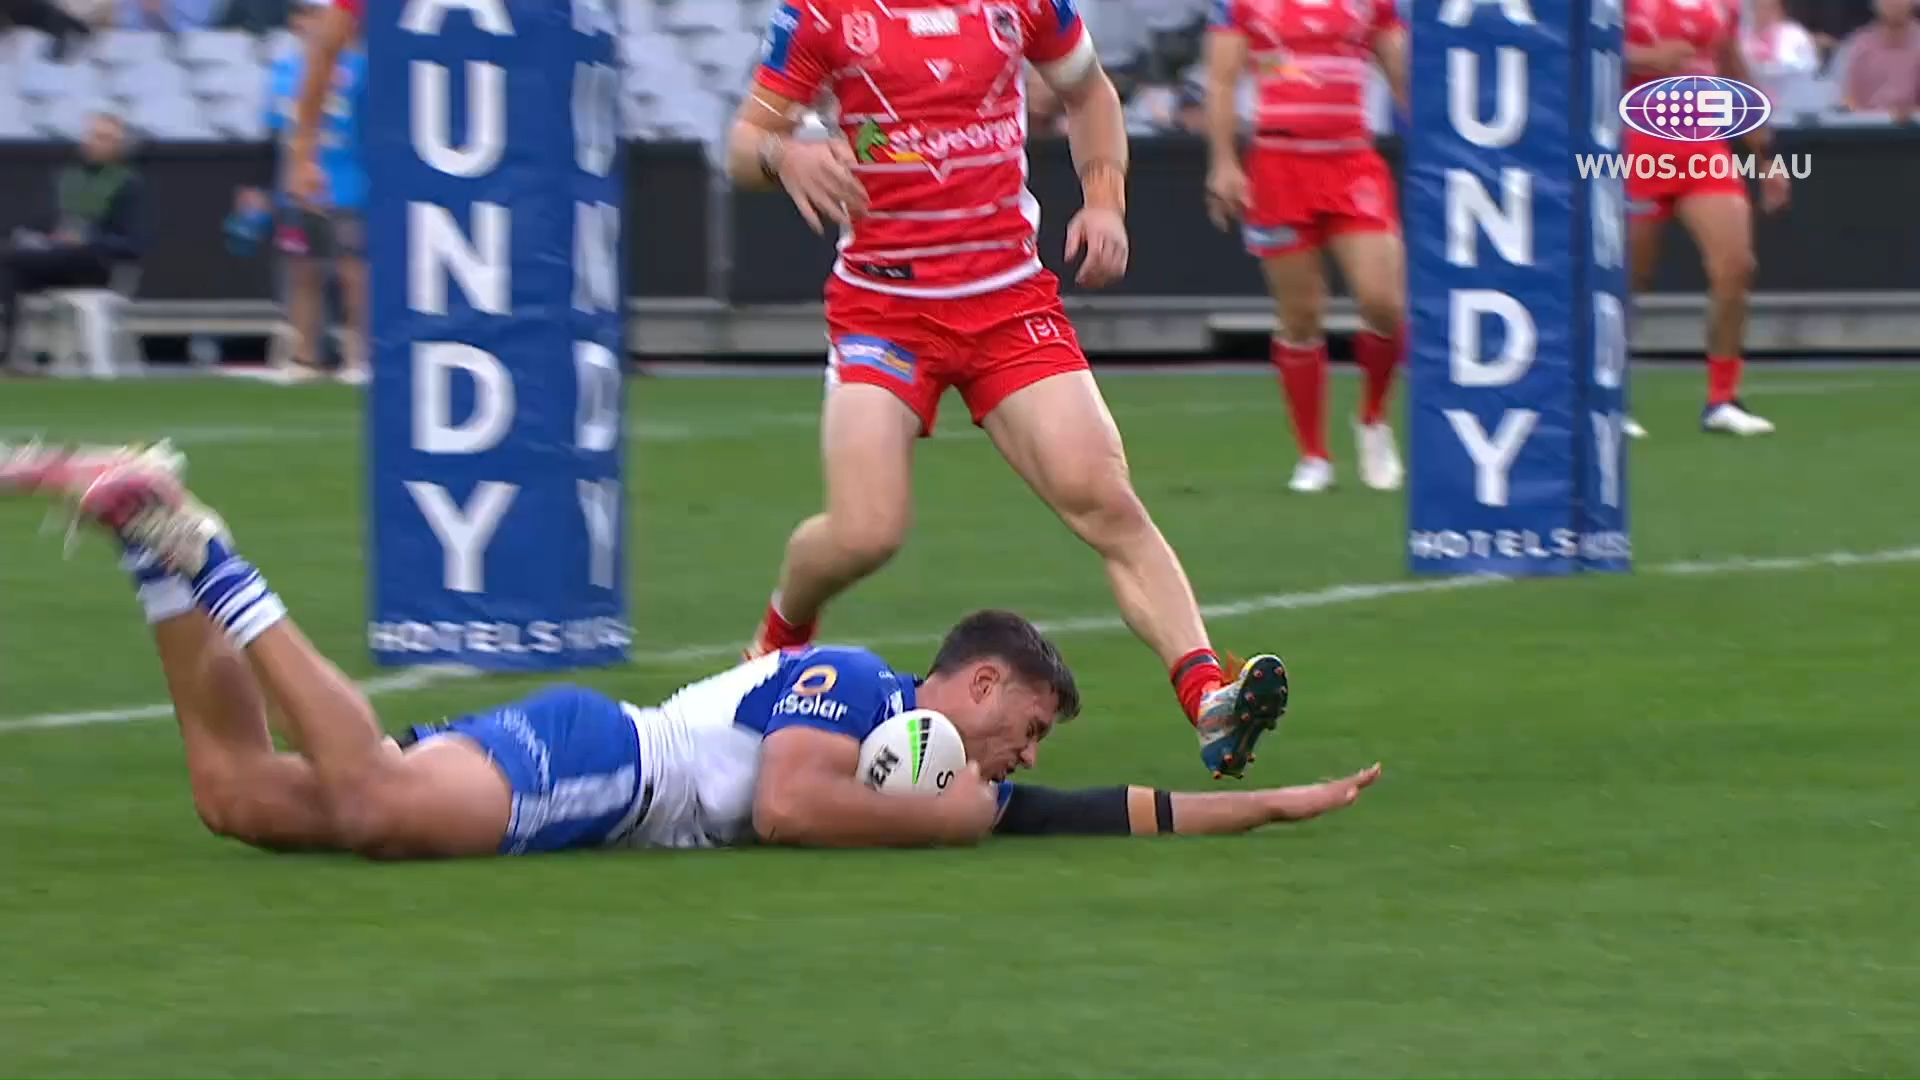 NRL Highlights: The Bulldogs upset the Dragons in a blowout - Round 14